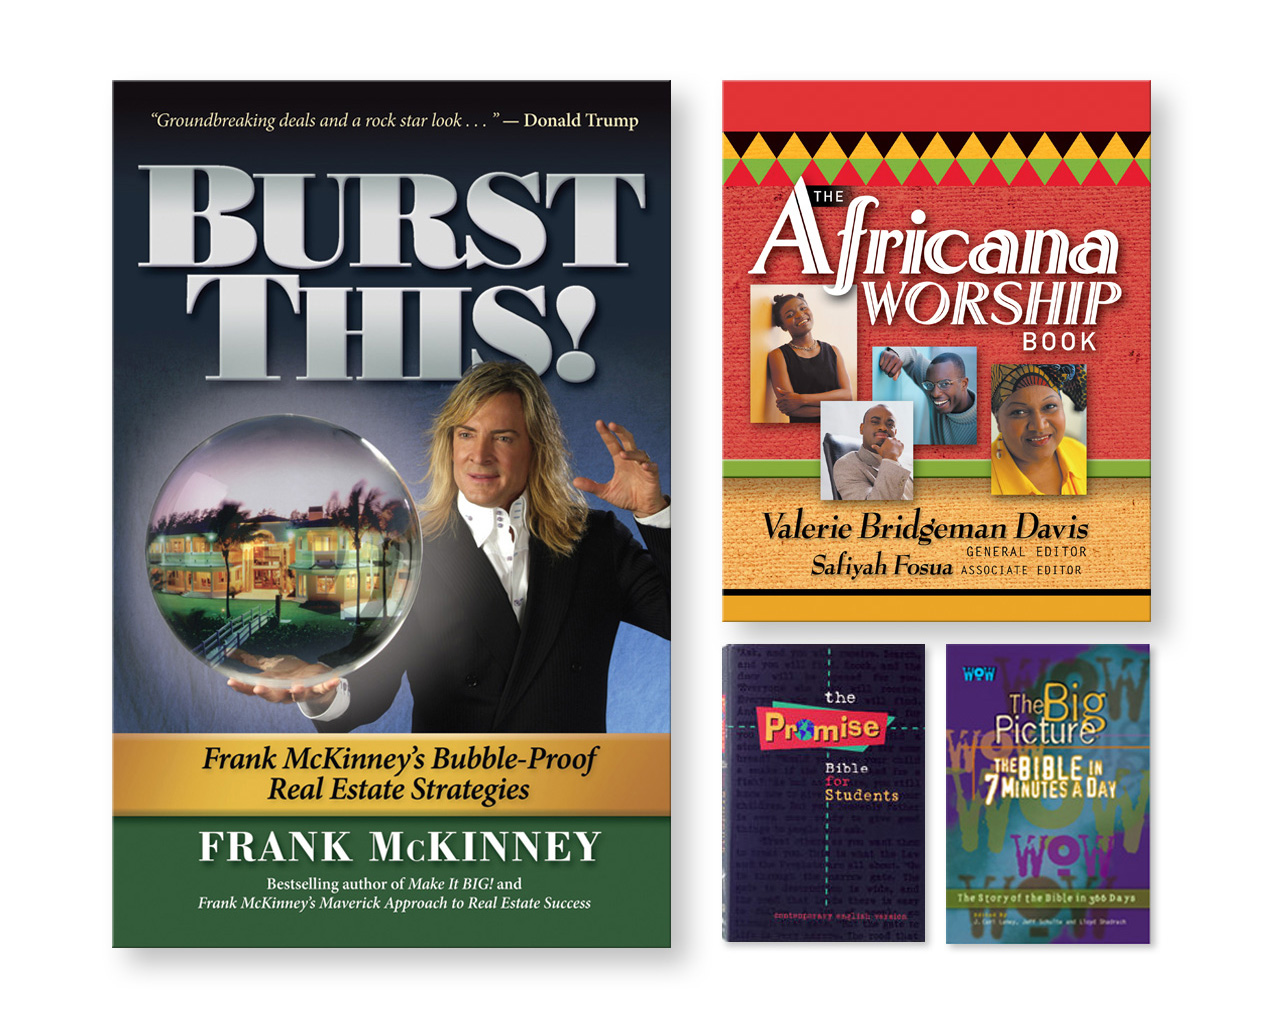 Burst This! by Frank McKinney and religious book and bible designs